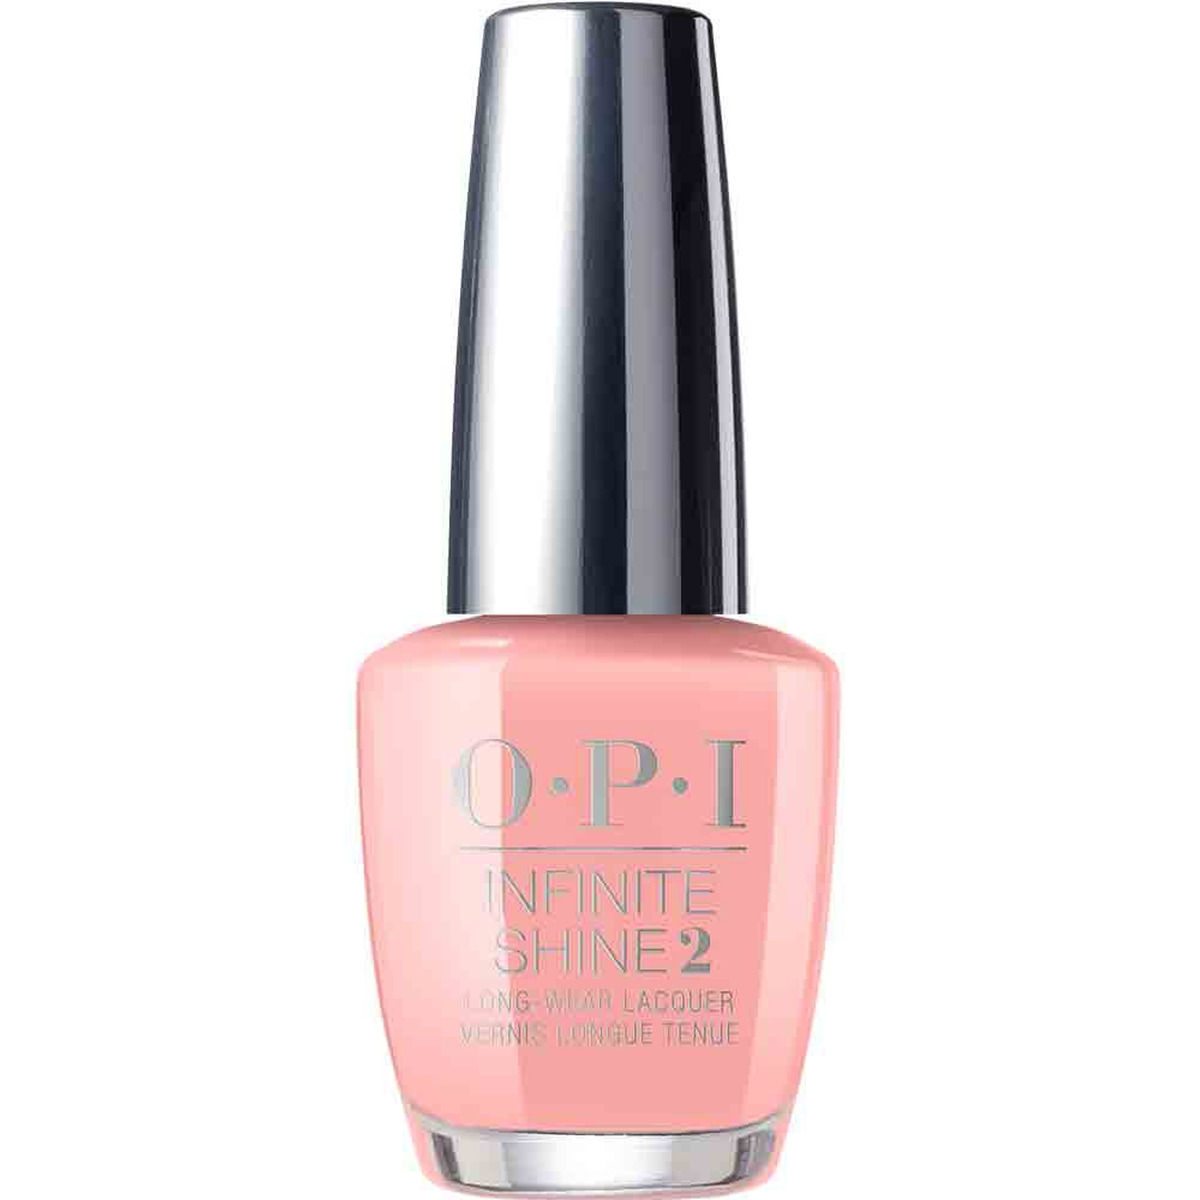 OPI Infinite Shine Лак для ногтей Hopelessly Devoted to OPI, 15 мл opi лак для ногтей iceland infinite shine 15 мл